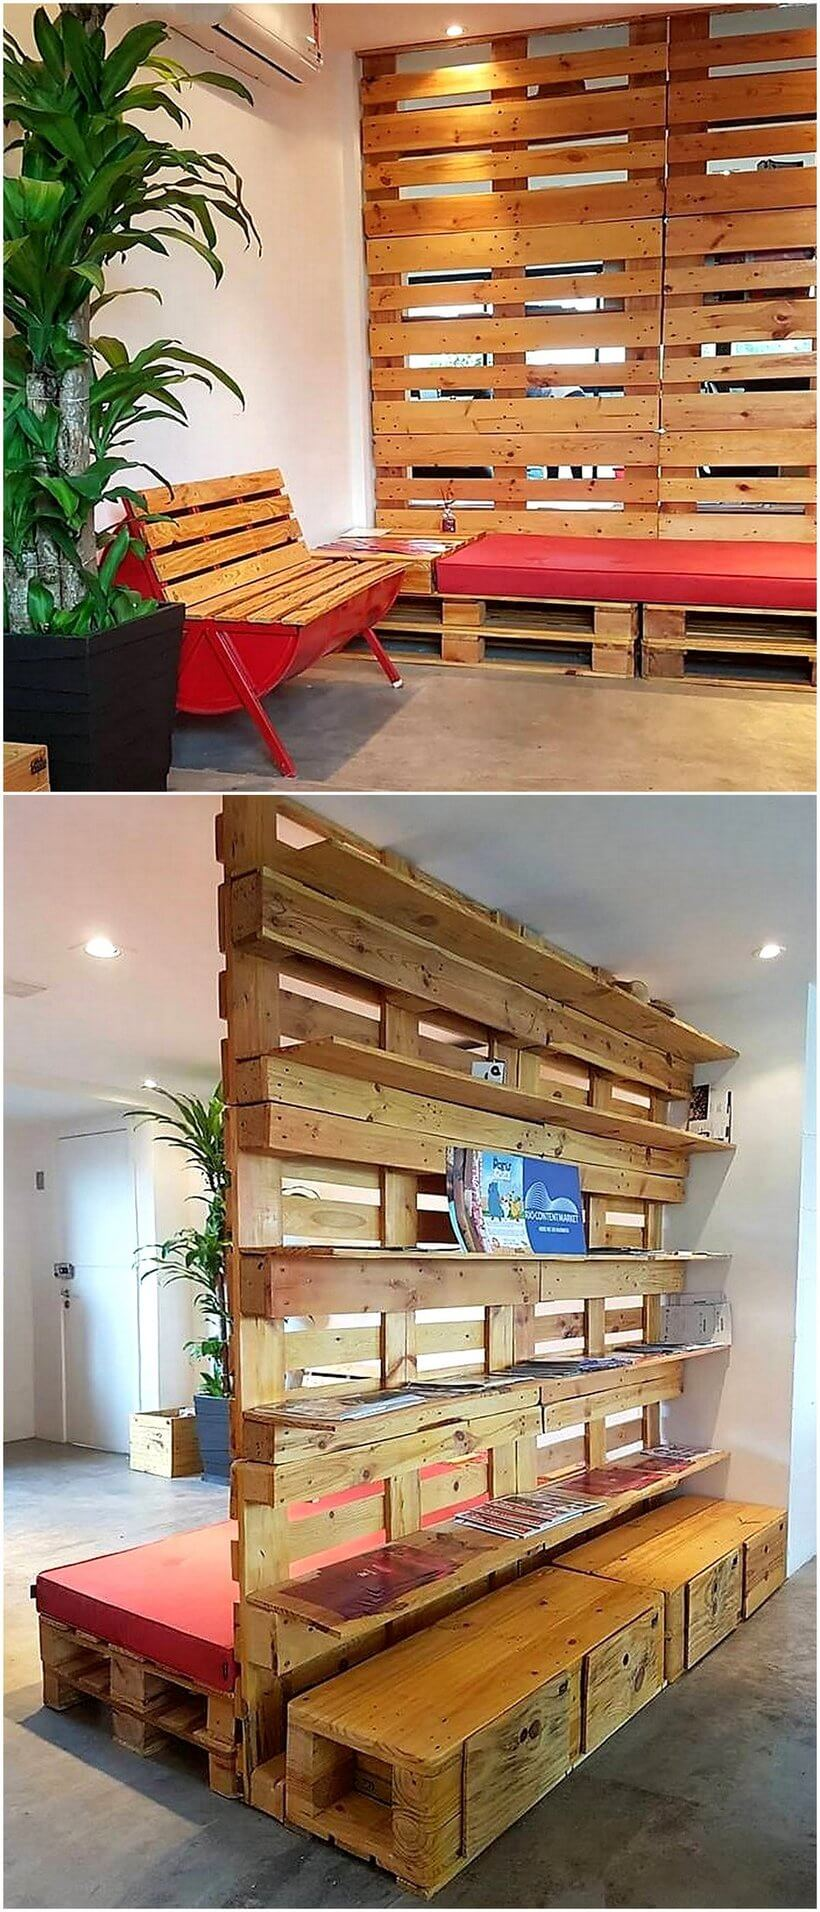 pallet space divider and bench and shelves